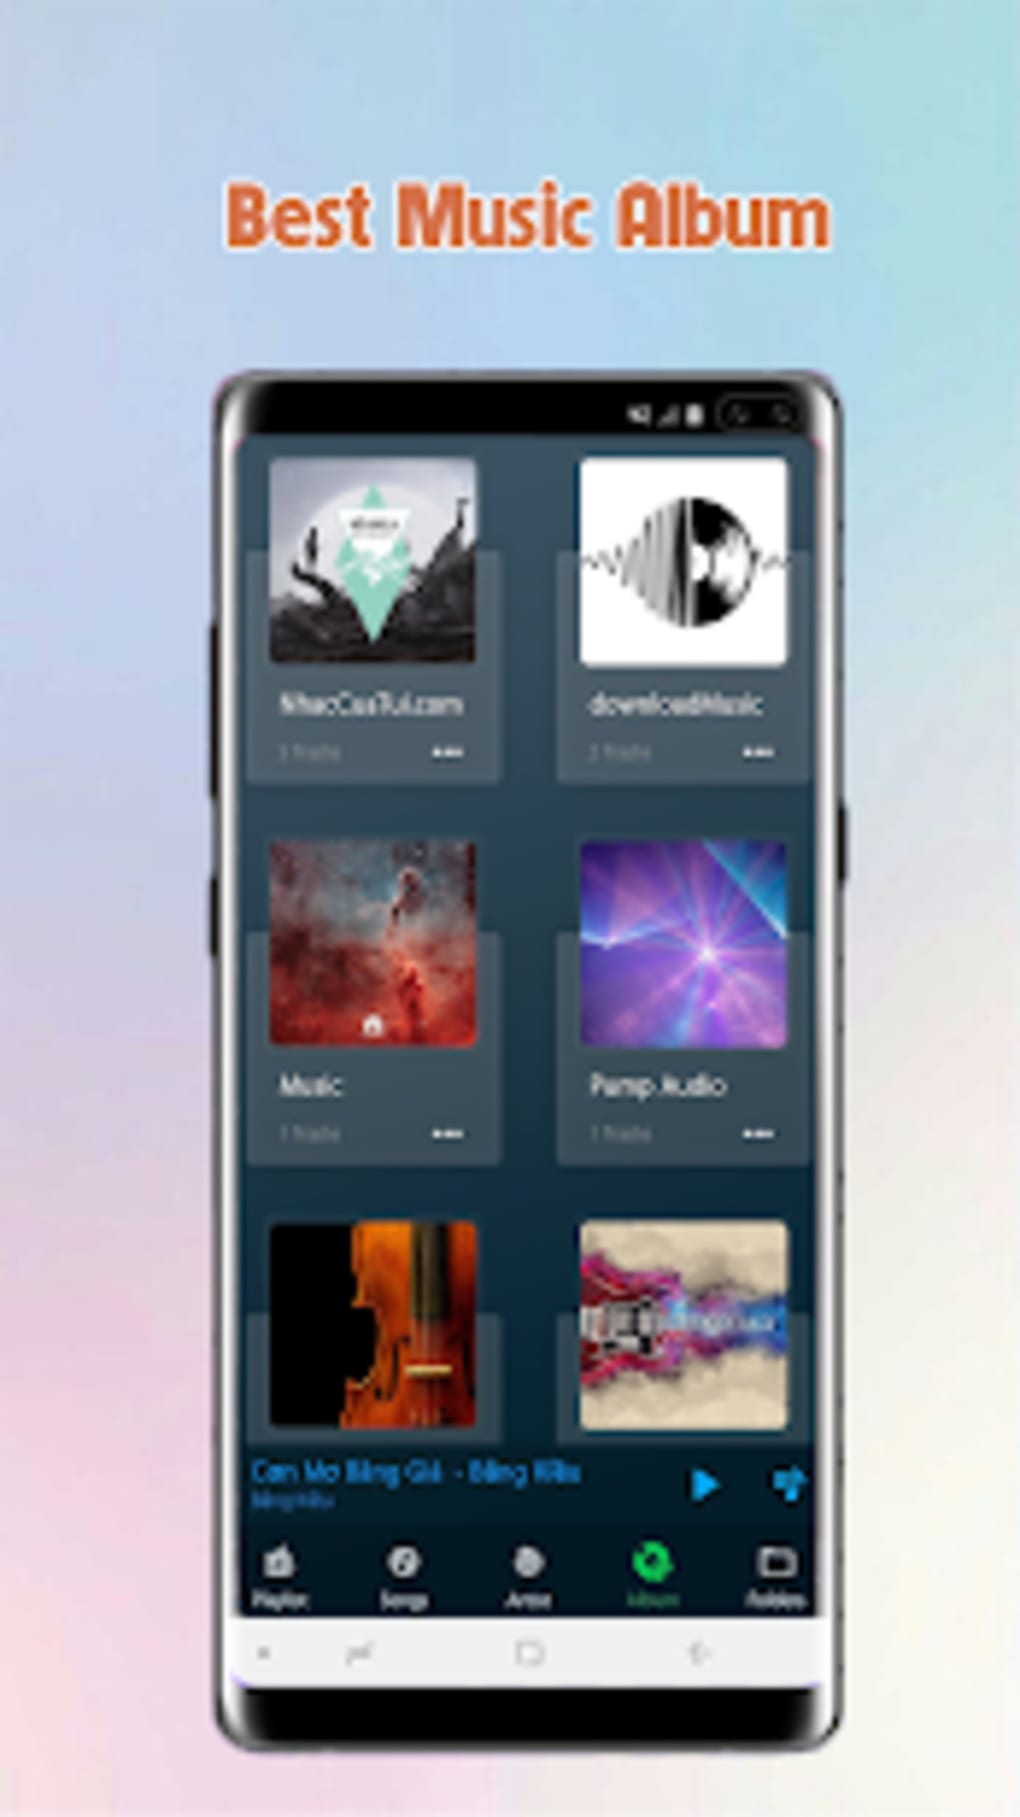 S10 Music Player - Mp3 player style S10 Galaxy for Android - Download